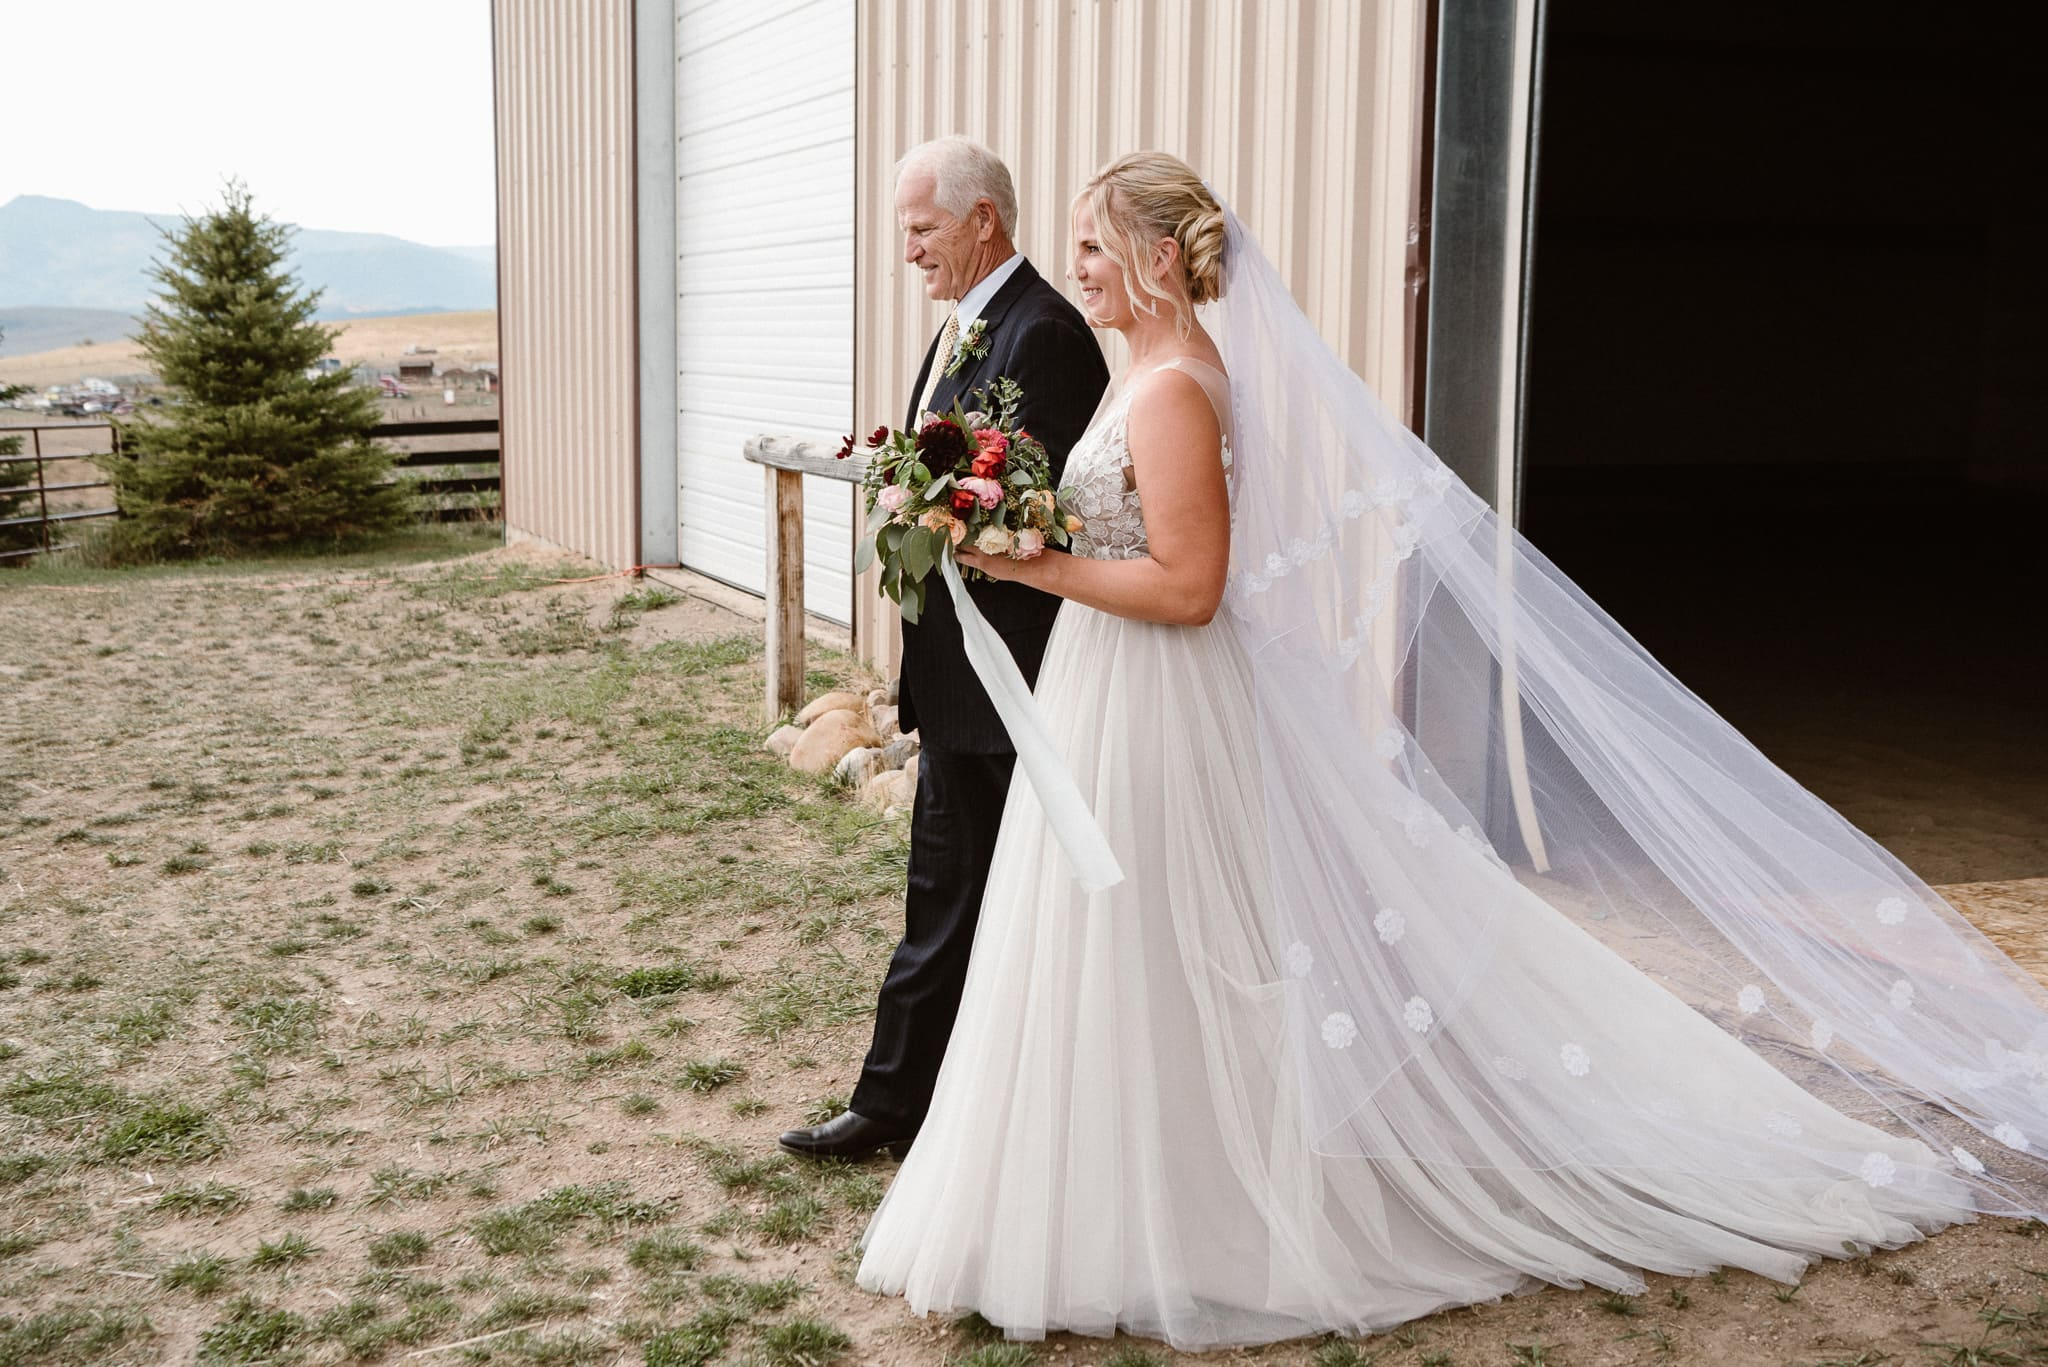 Steamboat Springs wedding photographer, La Joya Dulce wedding, Colorado ranch wedding venues, outdoor wedding ceremony, bride and her dad walking up the aisle